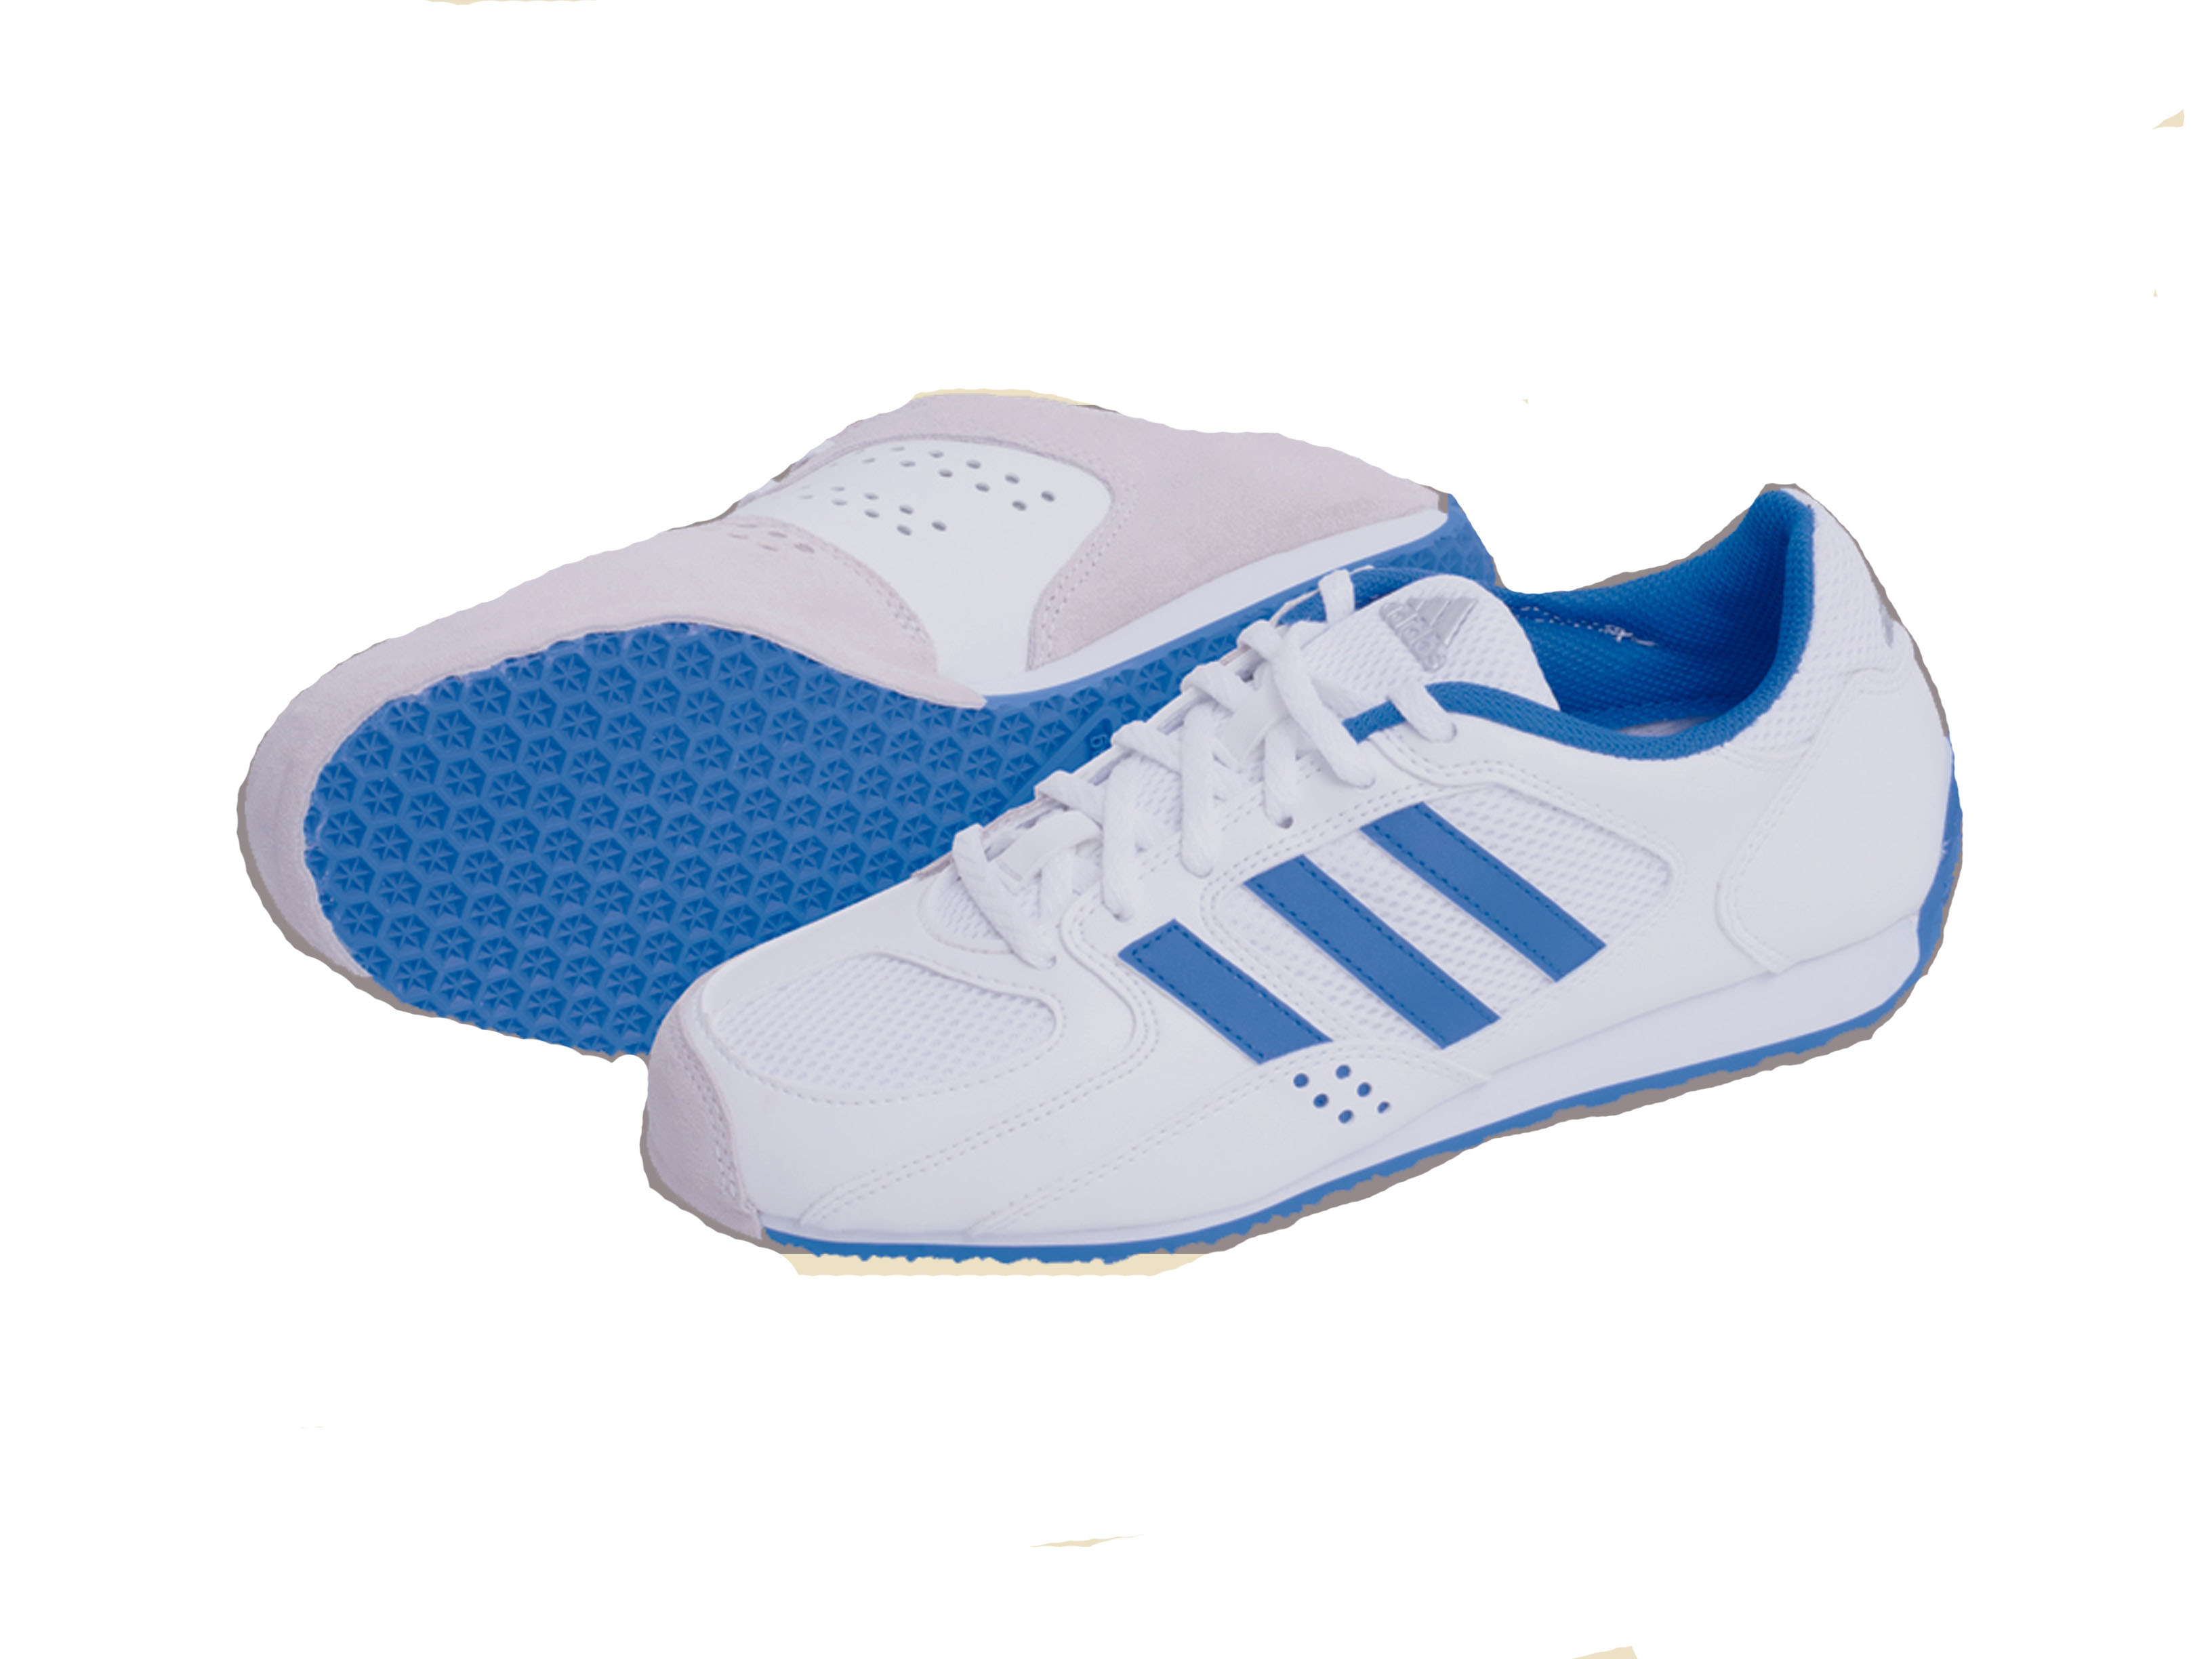 Adidas 2018 Adipower Fencing Shoes Style Guru Fashion